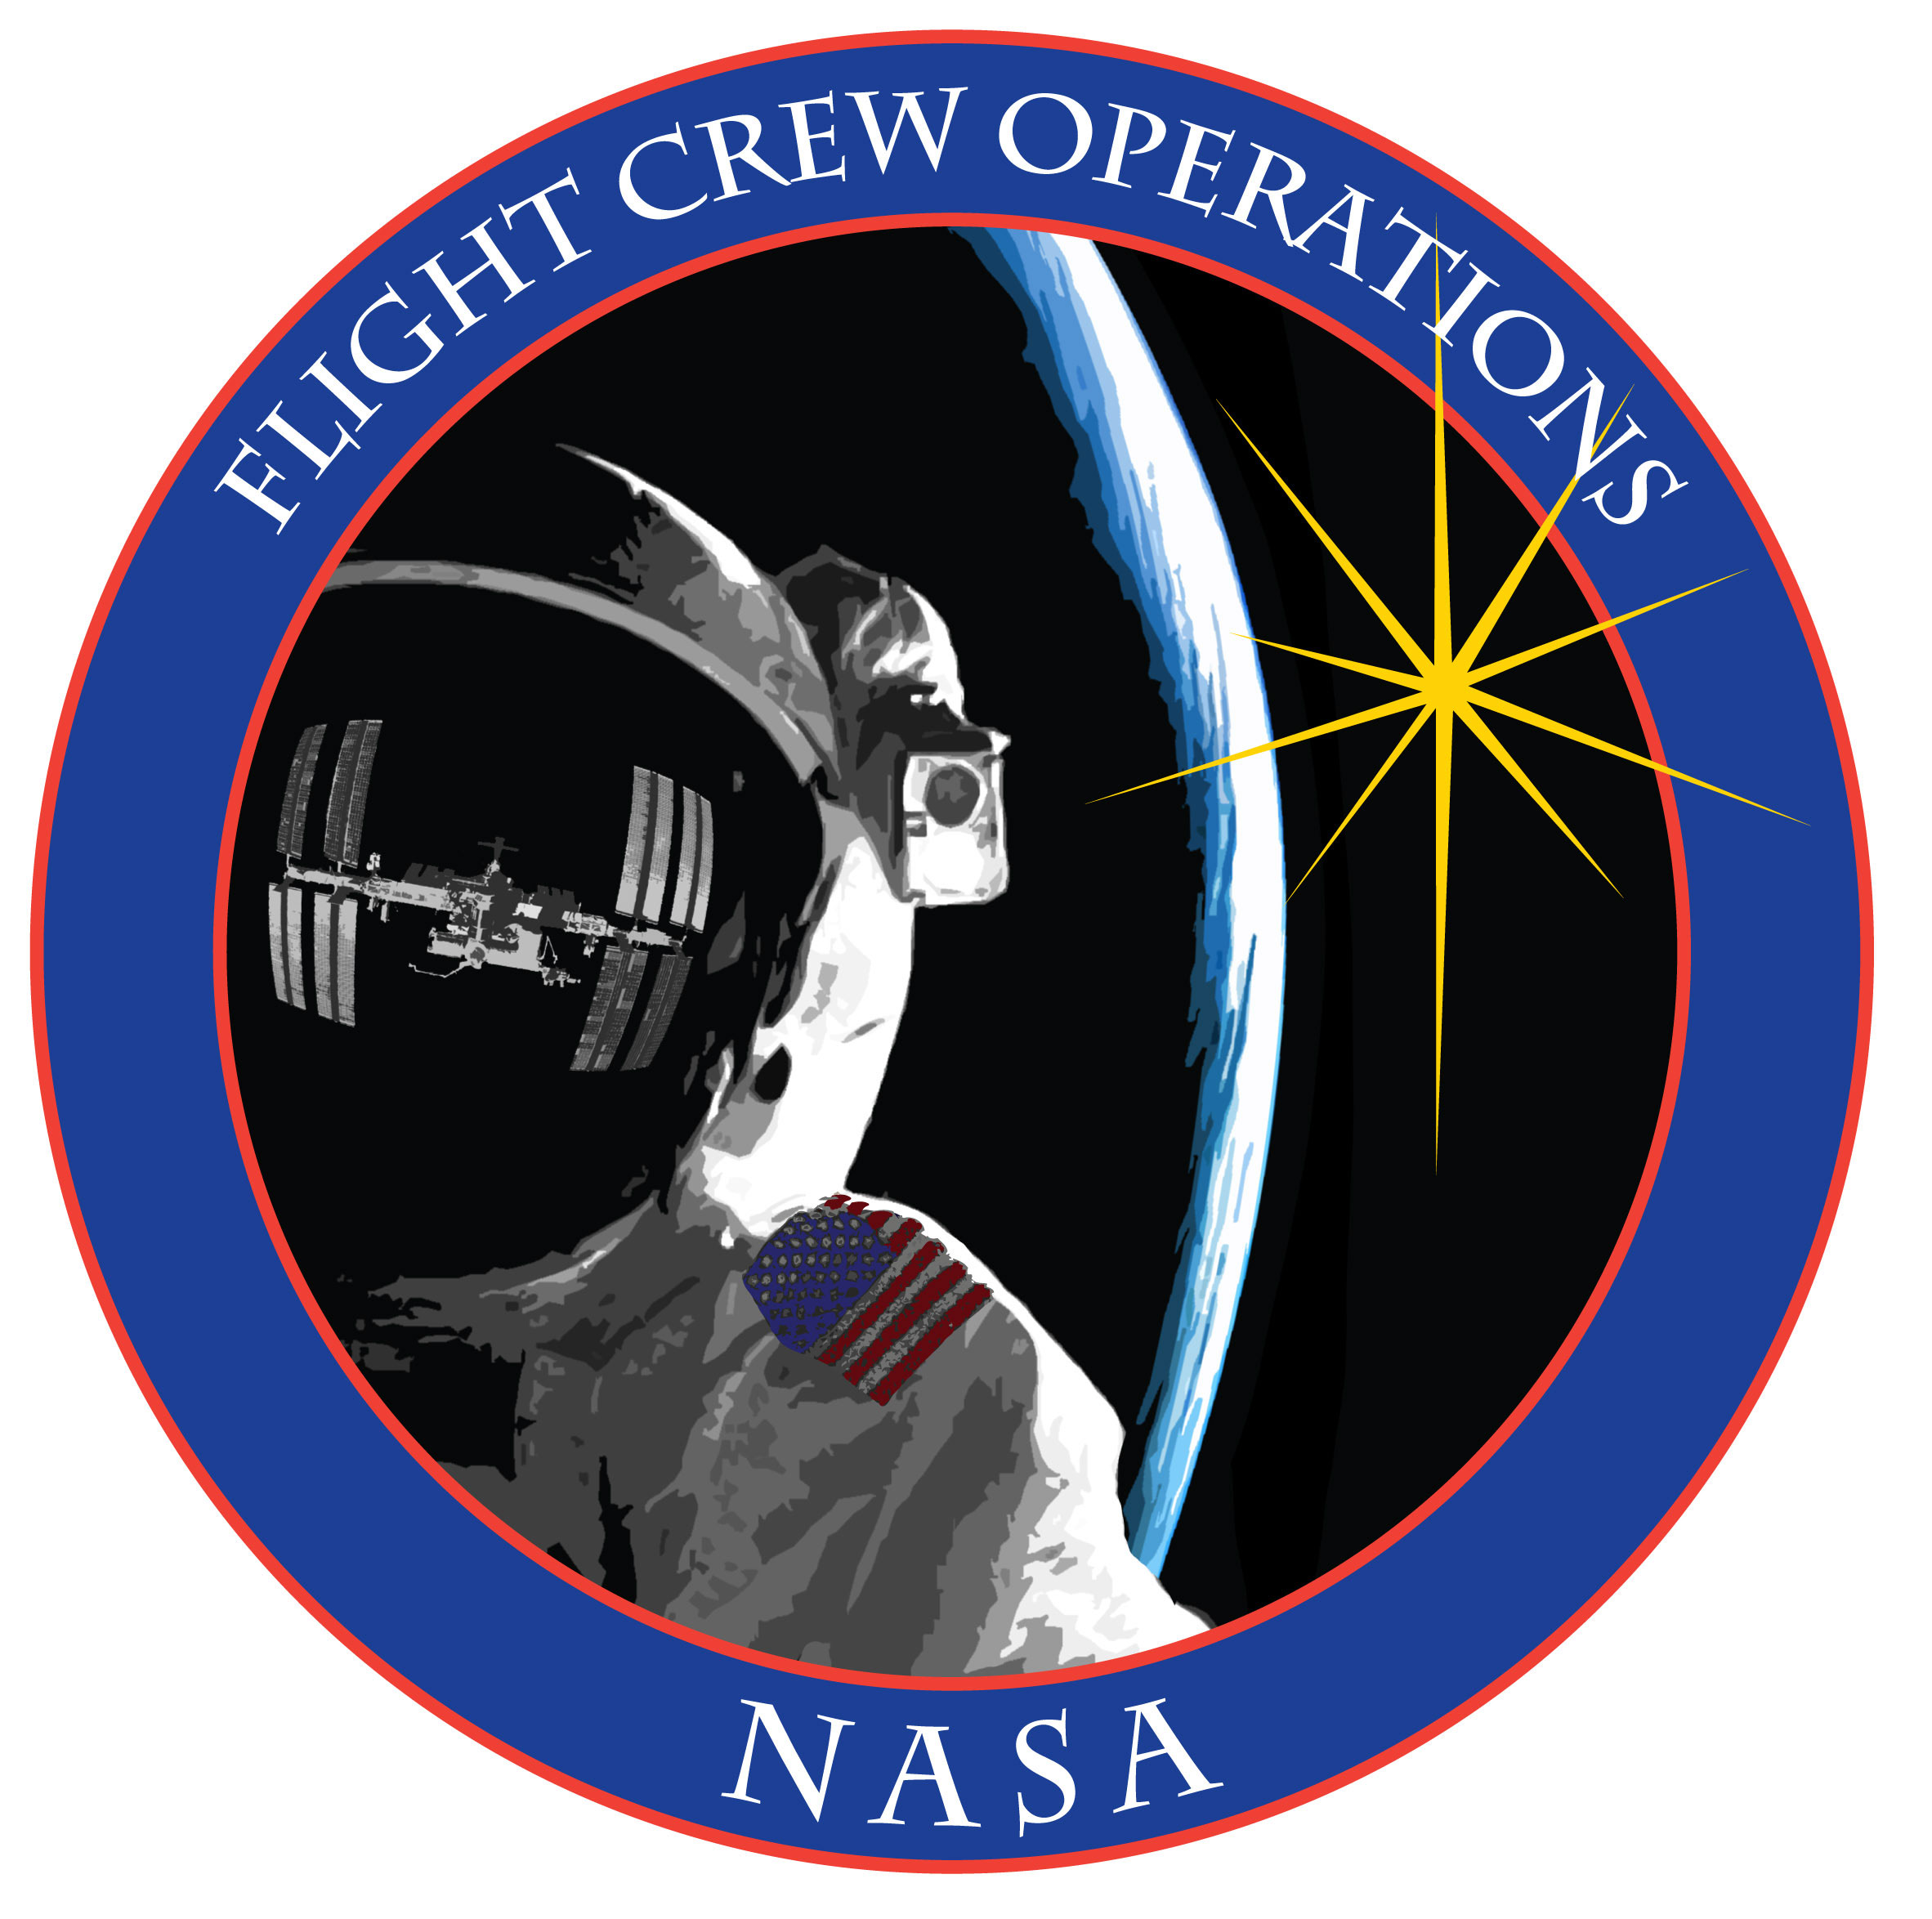 nasa emblem and cadets logos-#25